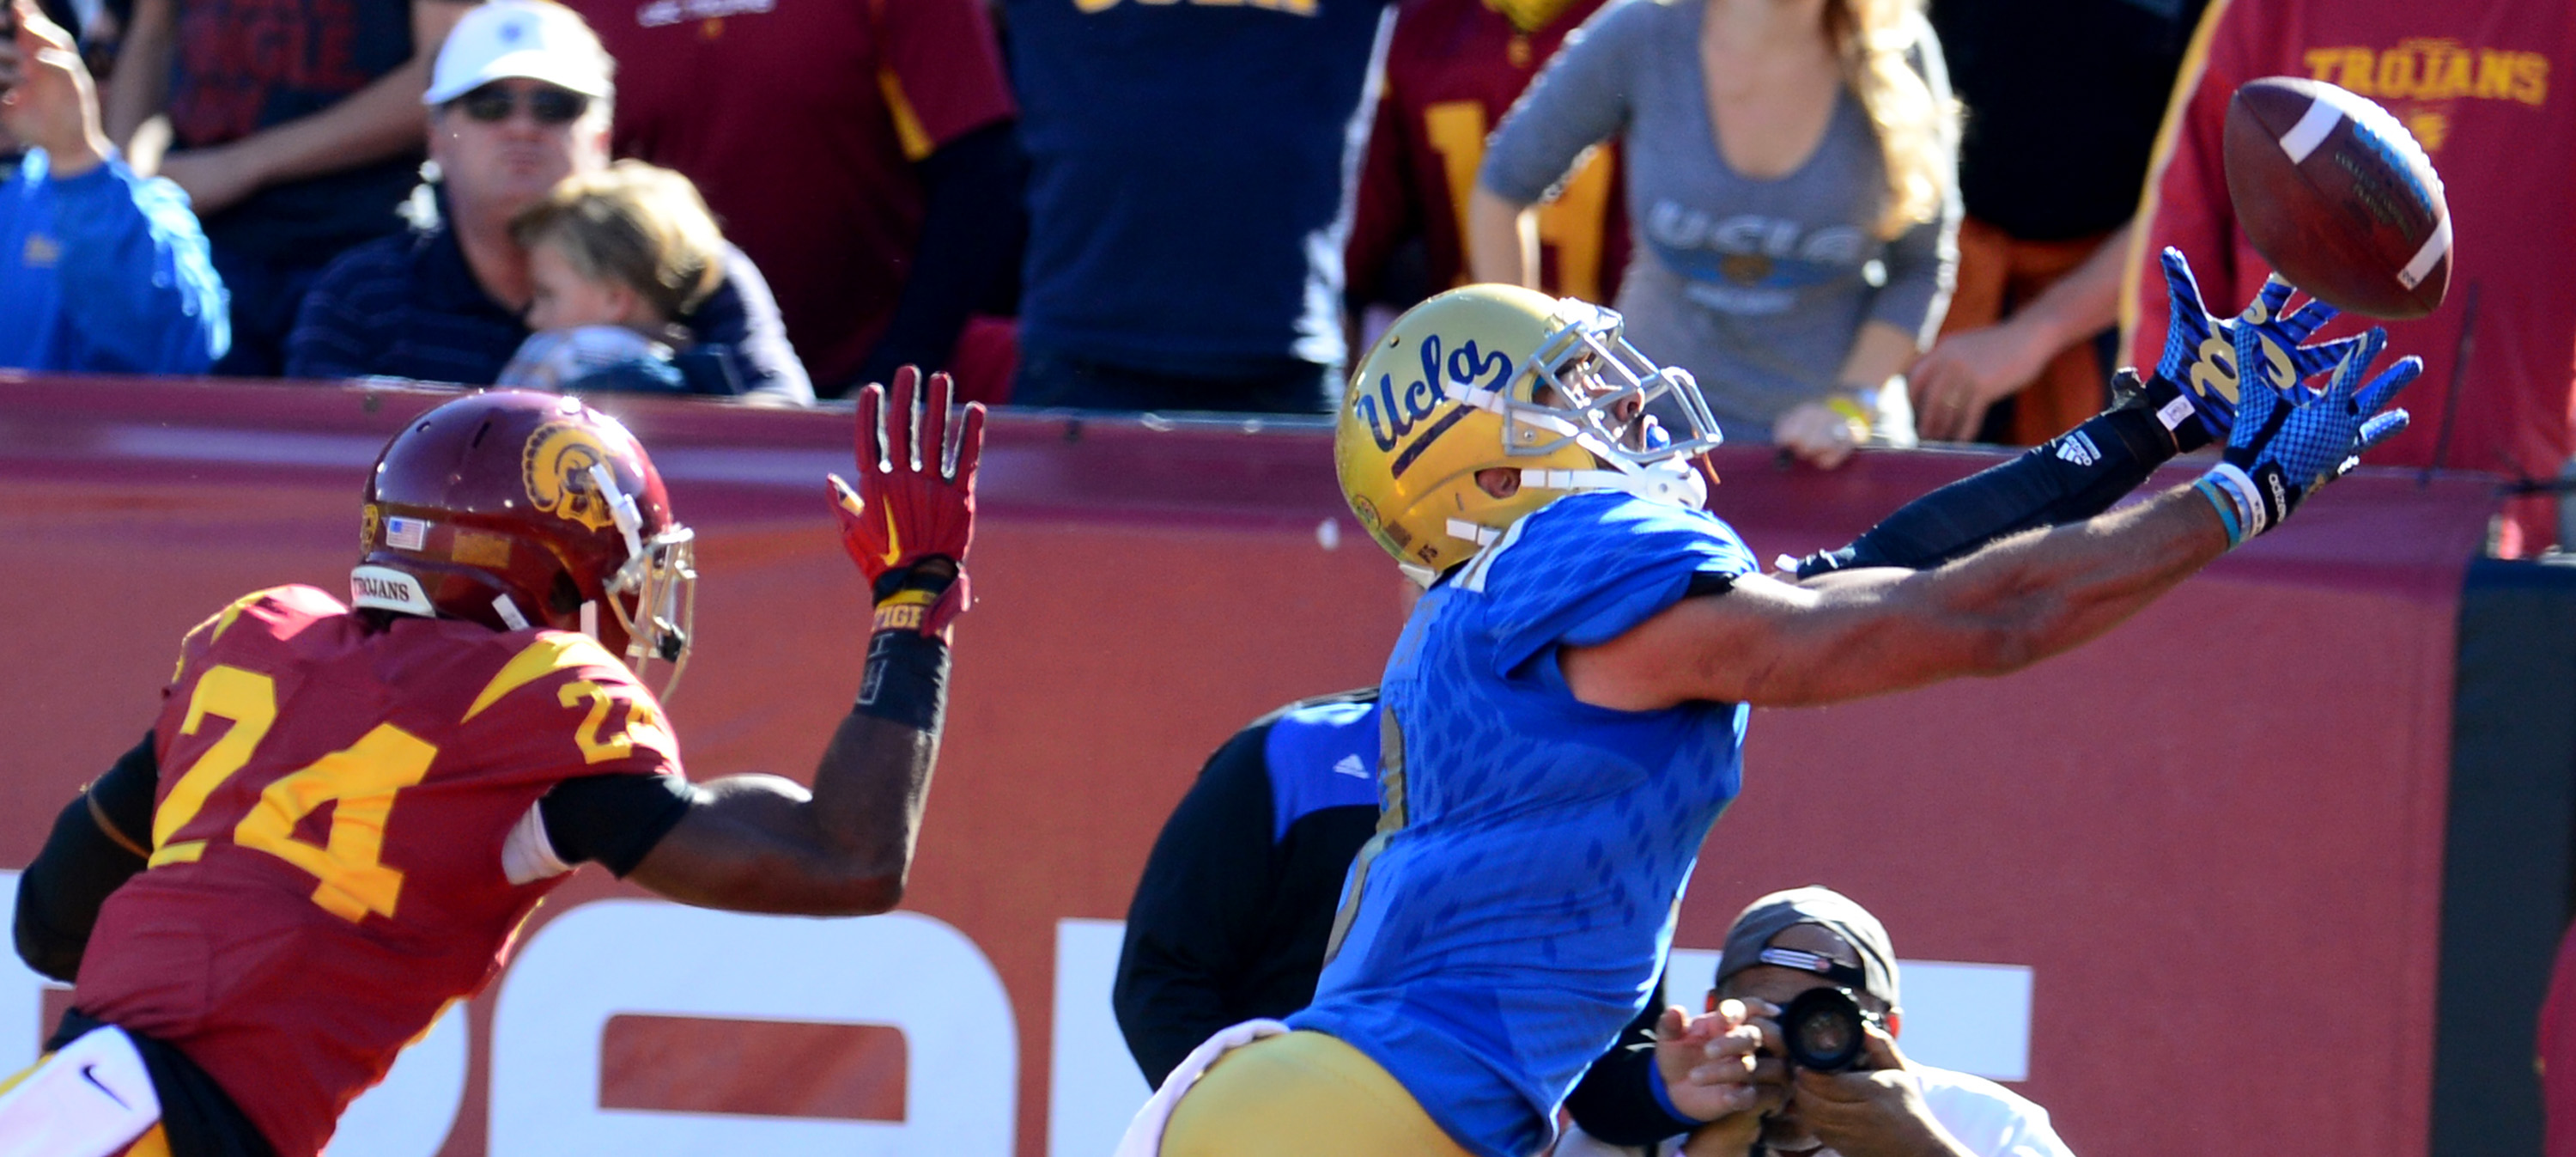 UCLA's bowl game will be the career finale for seniors such as Jordan Payton, the team's all-time receptions leader. (Keith Birmingham/Staff)